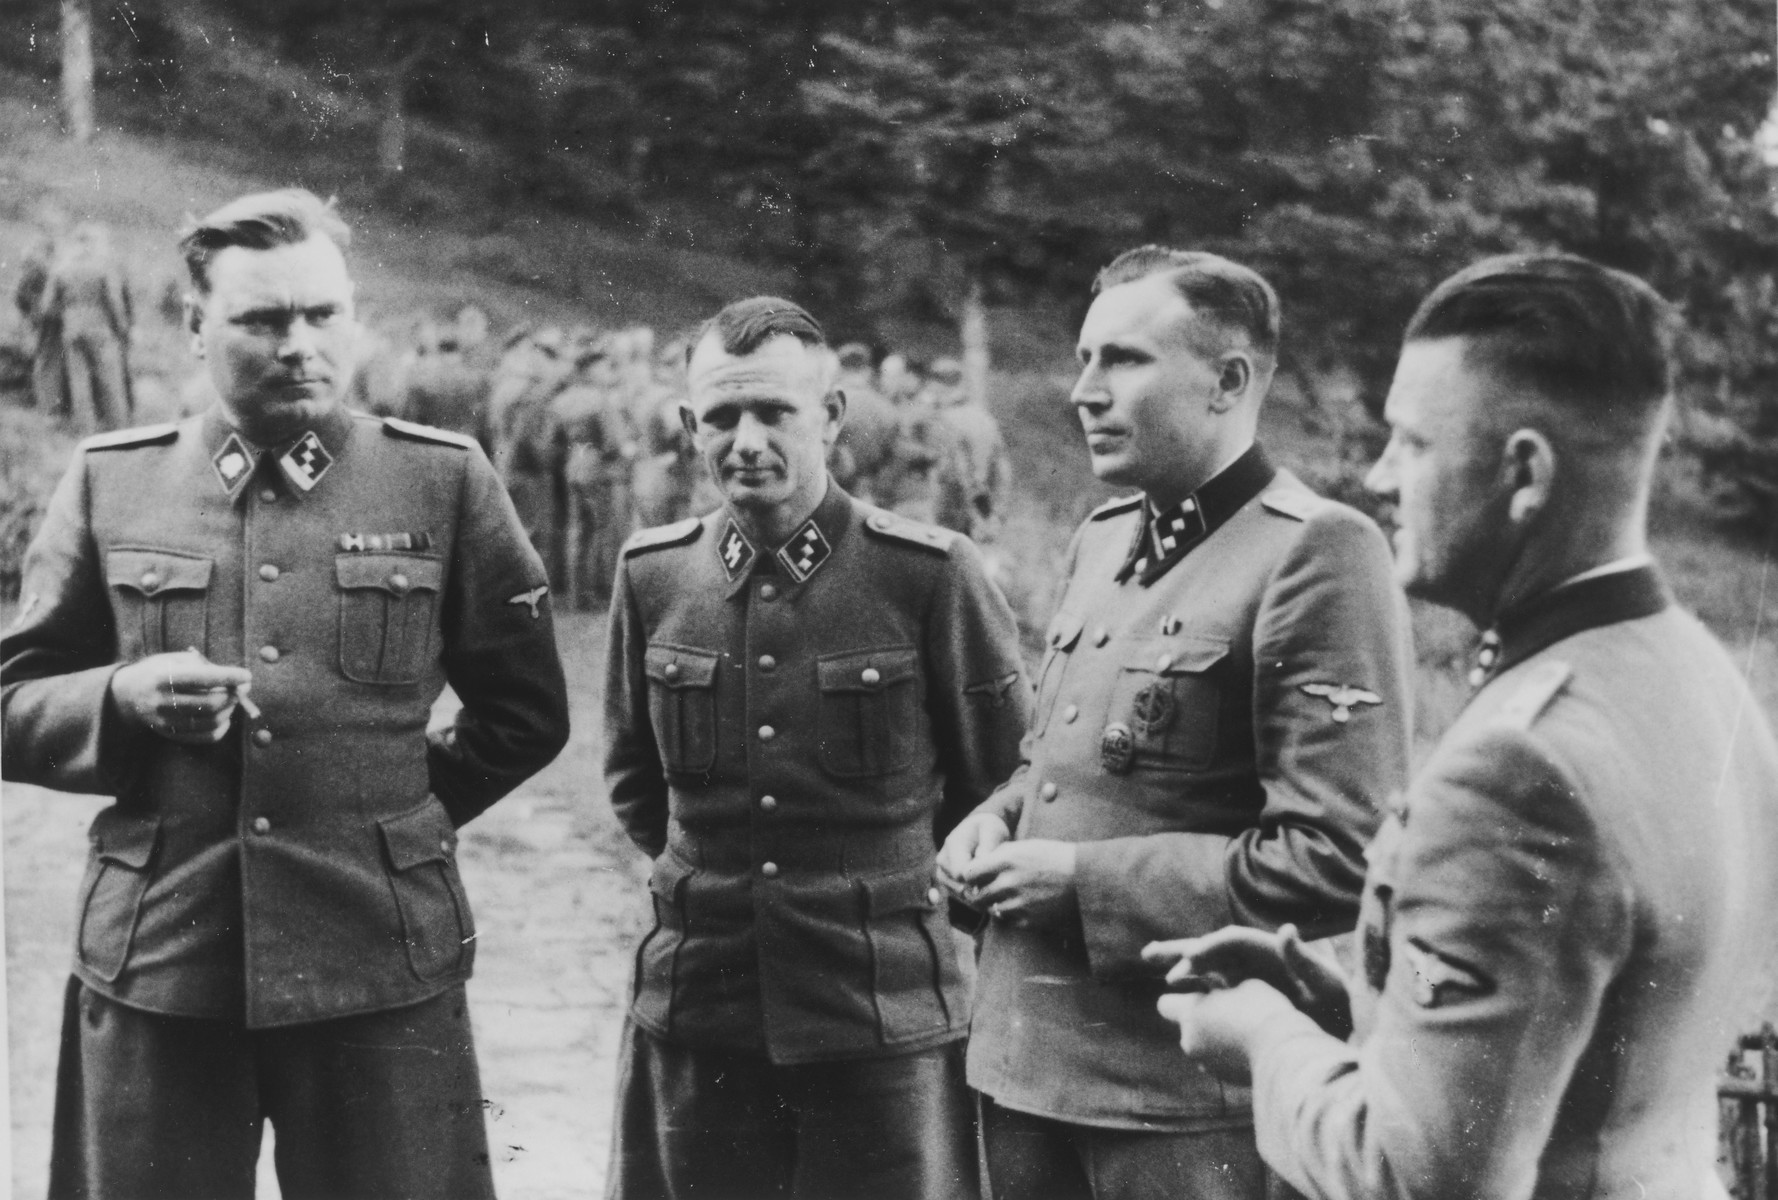 SS officers socialize on the grounds of the SS retreat Solahuette, outside of Auschwitz.  From left to right: Josef Kramer, Anton Thumann, Karl Hoecker, and Franz Hoessler.